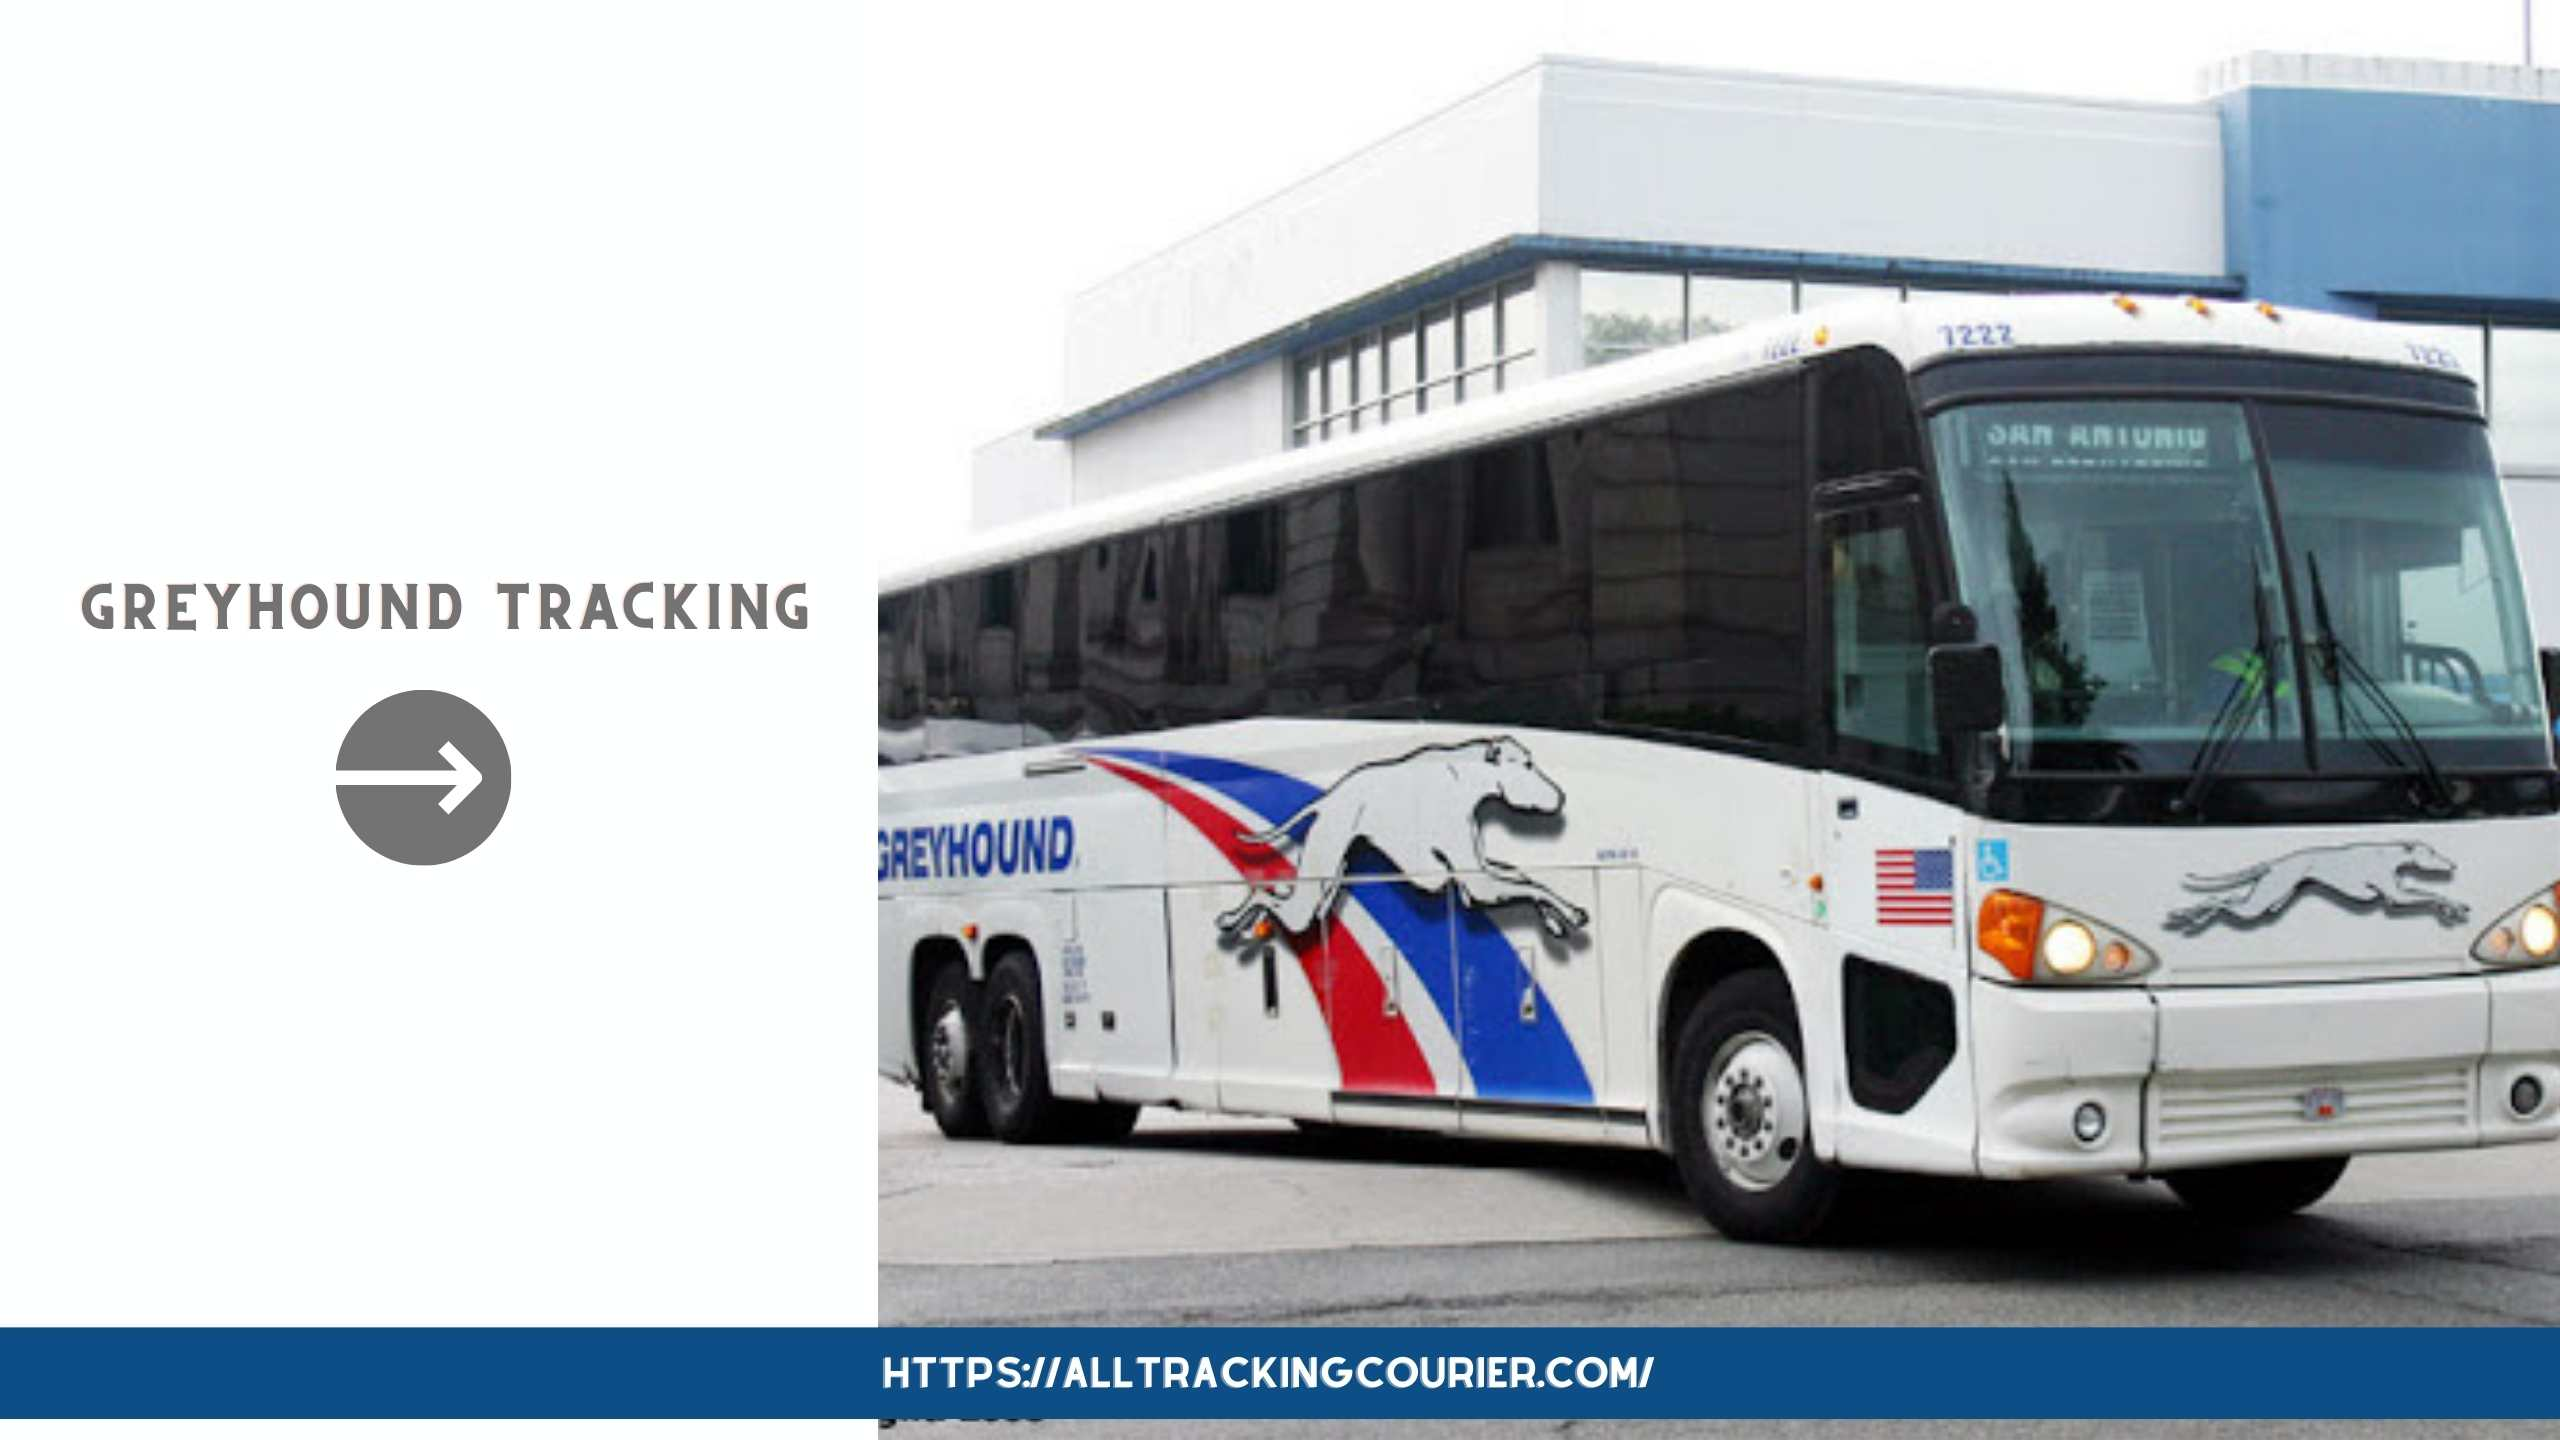 Greyhound Tracking - Track Your Package Live - Alltrackingcourier